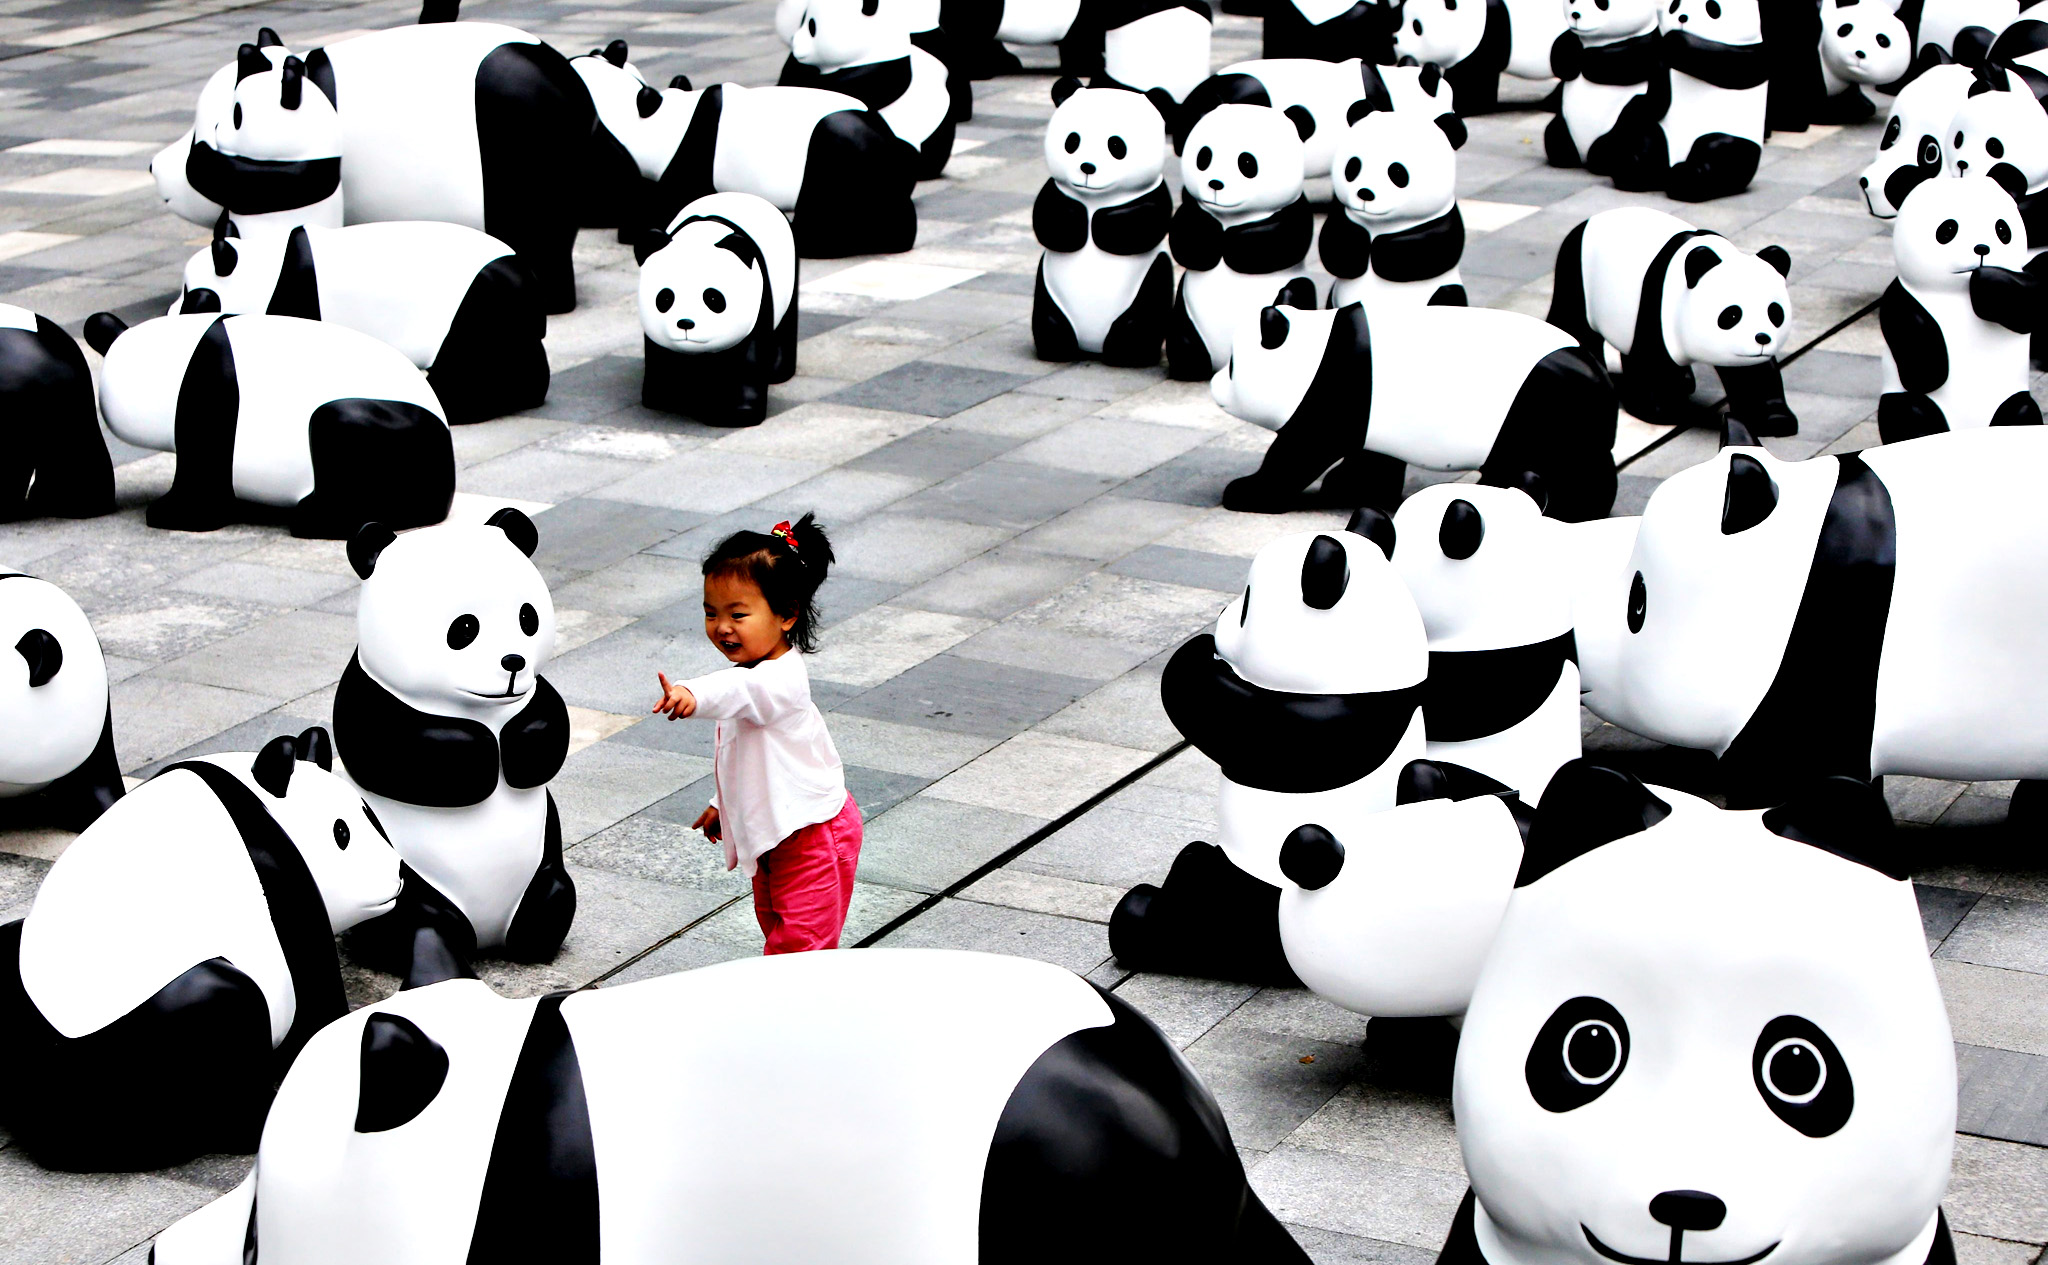 A child plays among panda sculptures at an installation in Shanghai city, China, 03 June 2014. As many as 100 panda sculptures made of recycled bamboo materials were displayed for citizens at a commercial district in a call for environmental protection.